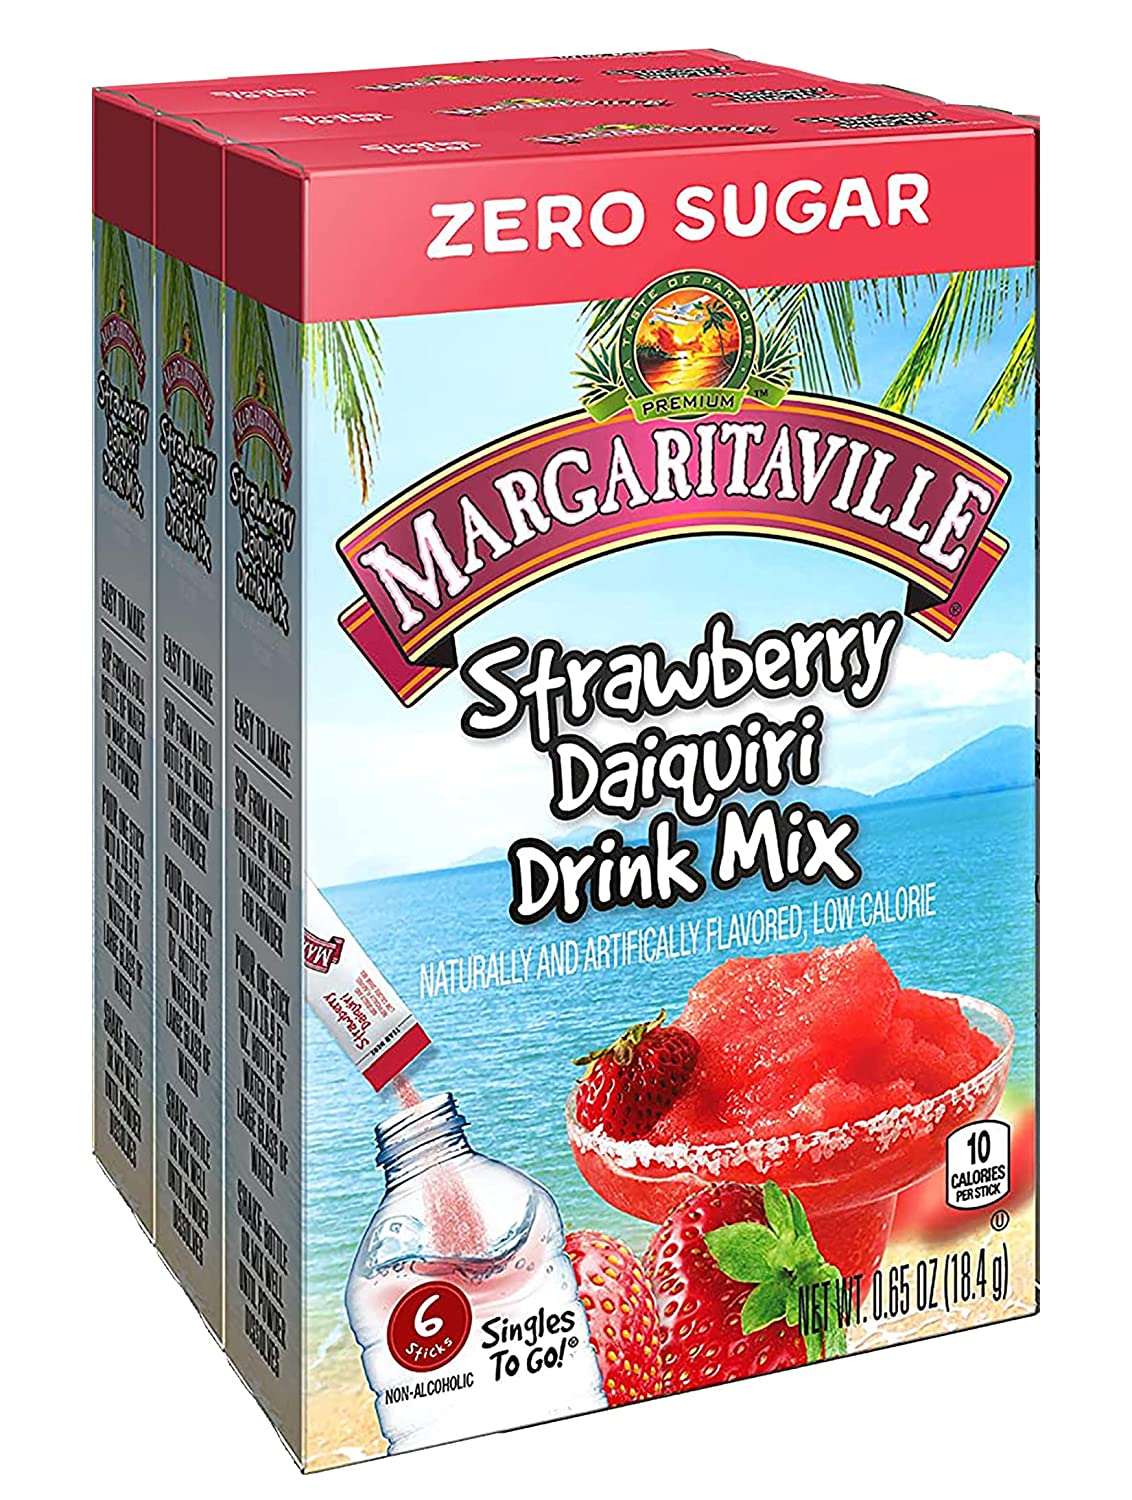 Margaritaville Strawberry Daiquiri Singles To Mix CT Go Be Tucson Mall super welcome 6 Drink